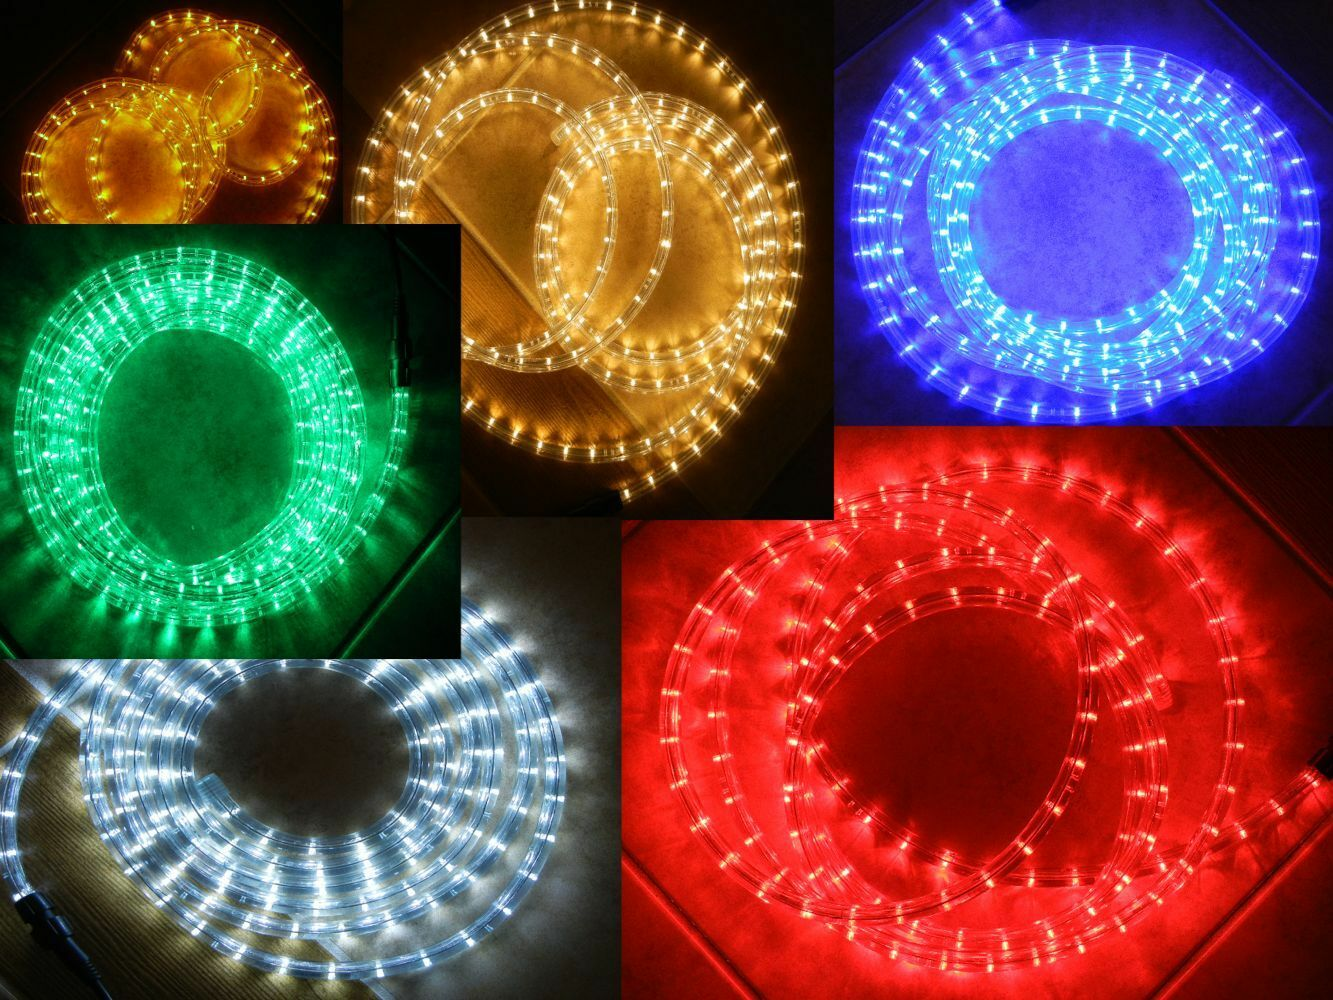 Multi Function Led String Lights : LED Rope Lights Chasing 3 Wire Round Multi-Function 110V White, Blue, Green, Red ?48.73 ...